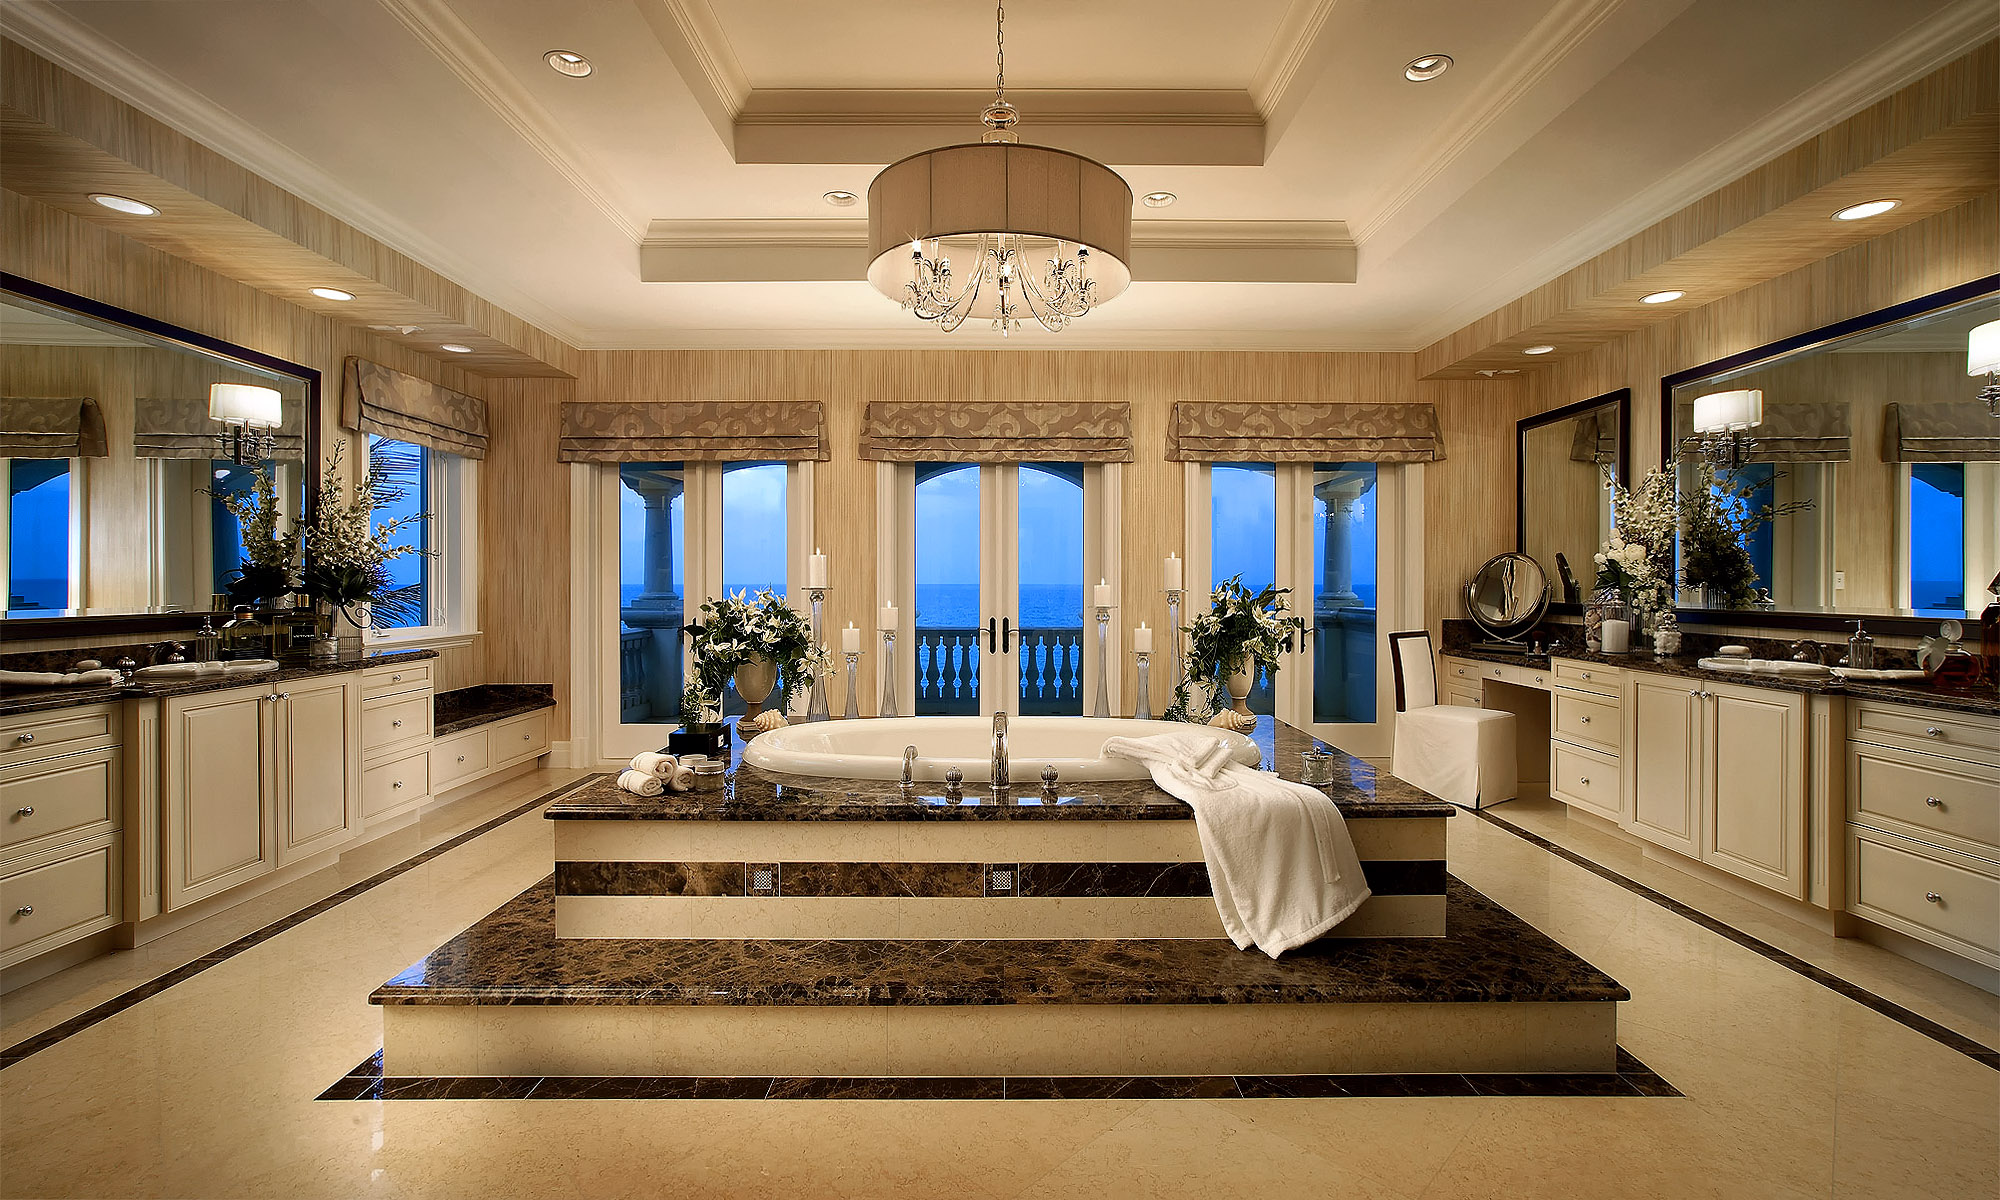 Luxury-Real-Estate-Photography-Bathroom-28